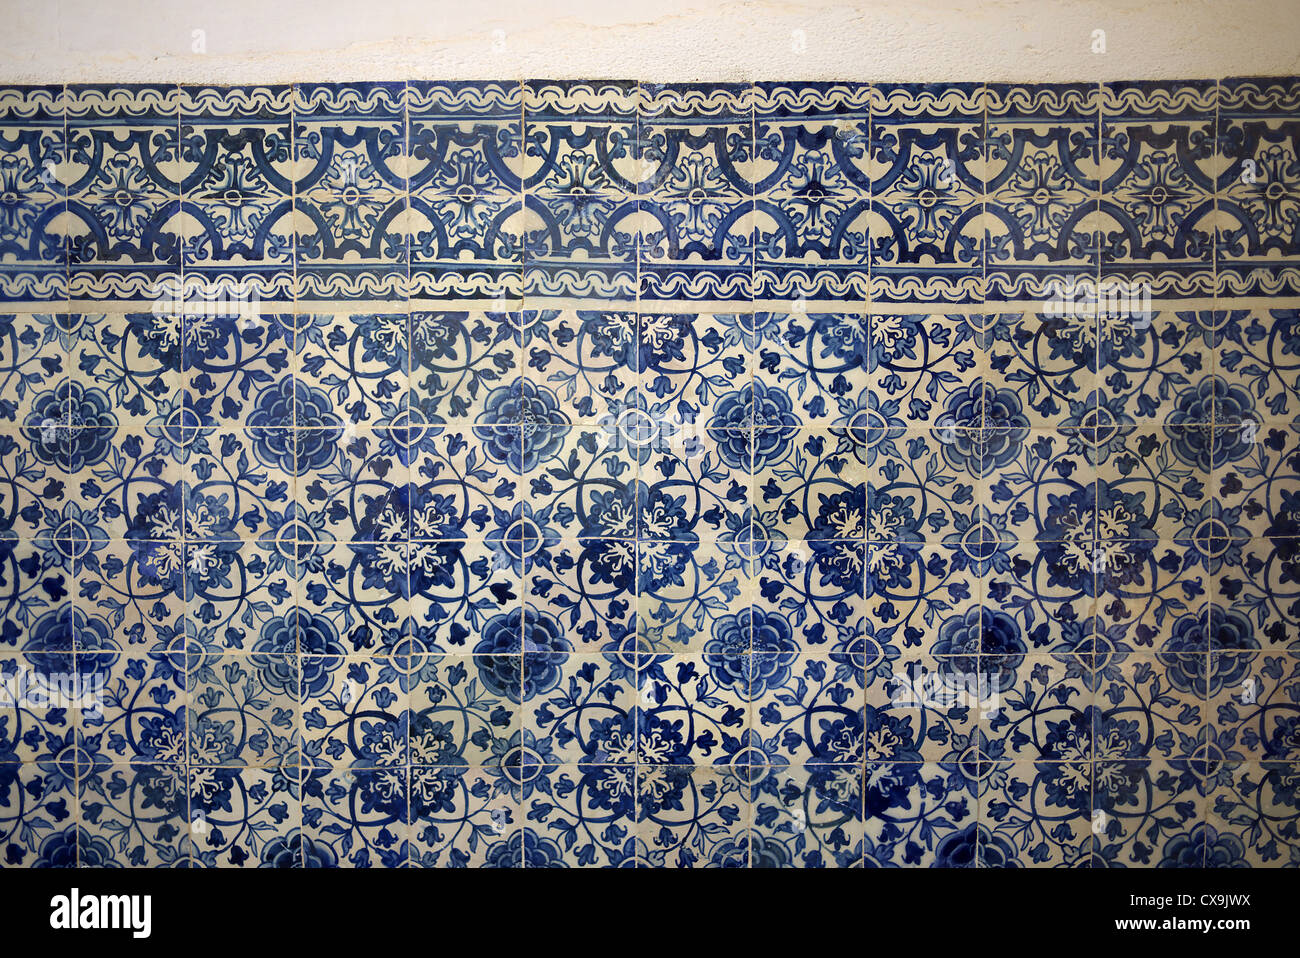 Detail of hand painted tiles in the Templar Castle in Tomar, Portugal. - Stock Image